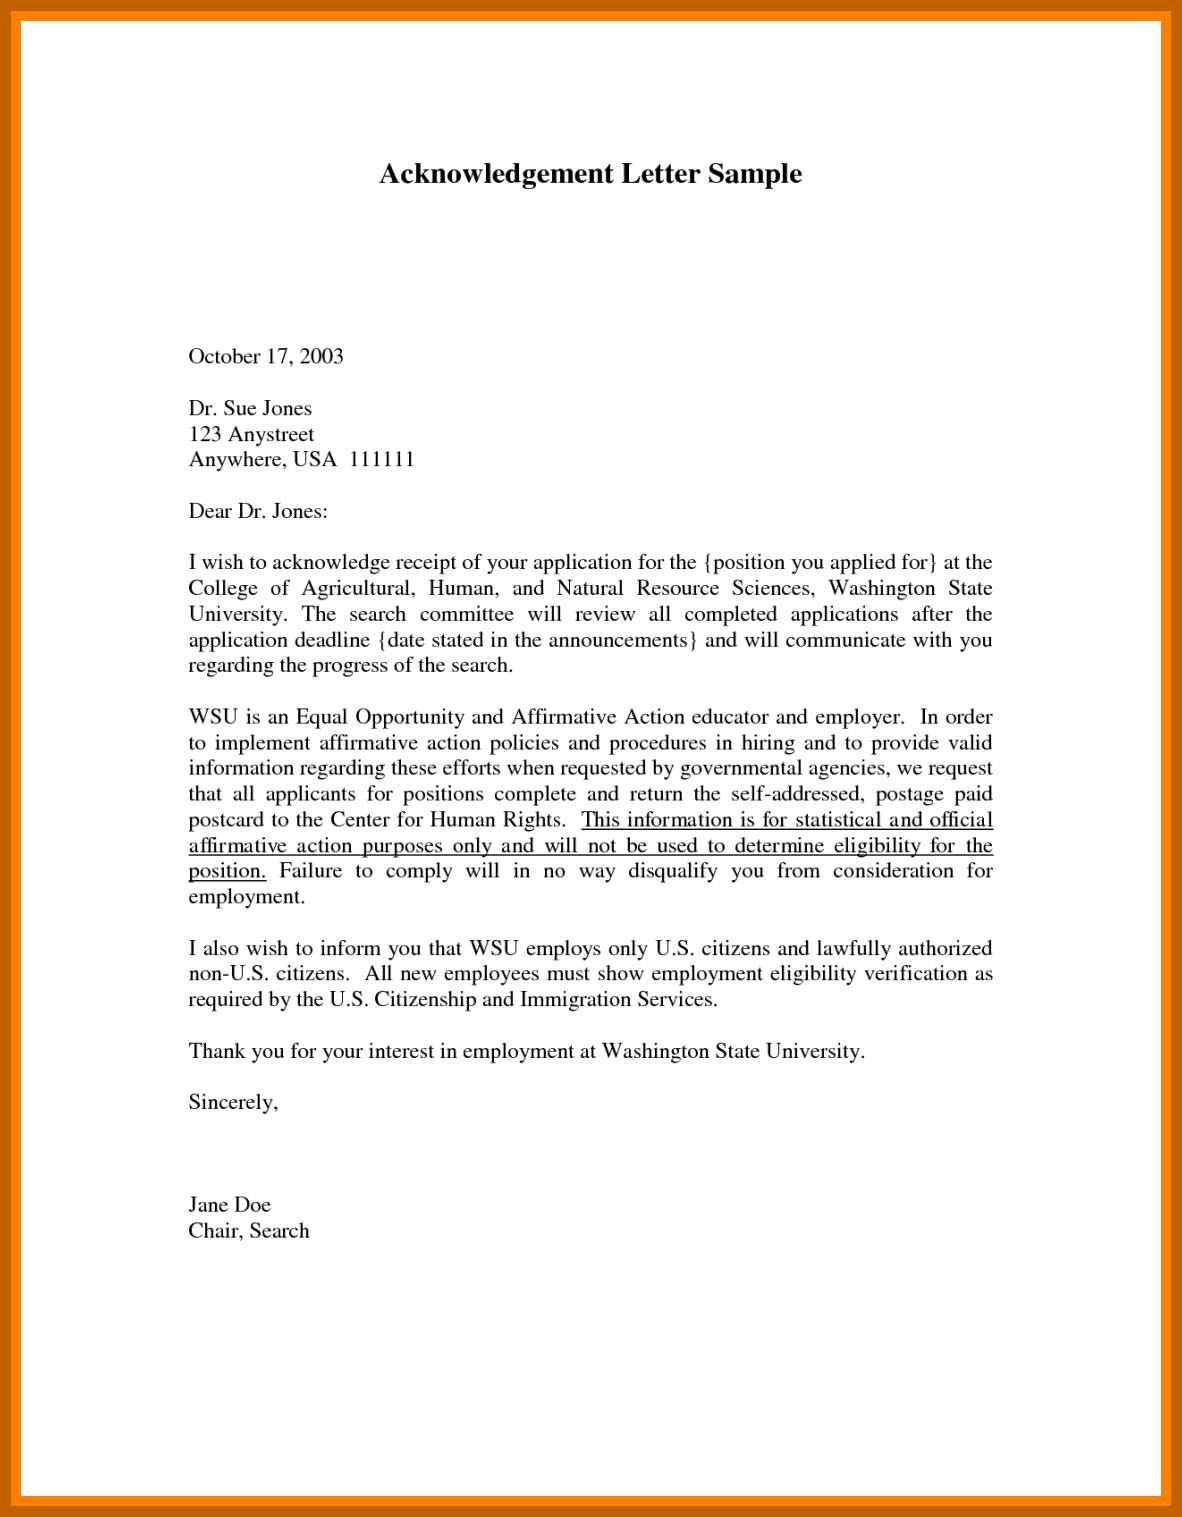 Immigration Letters Of Recommendation Examples Luxury 5 6 Support Letter Sample For Immigr Personal Reference Letter Reference Letter Reference Letter Template Thank you letter for reference